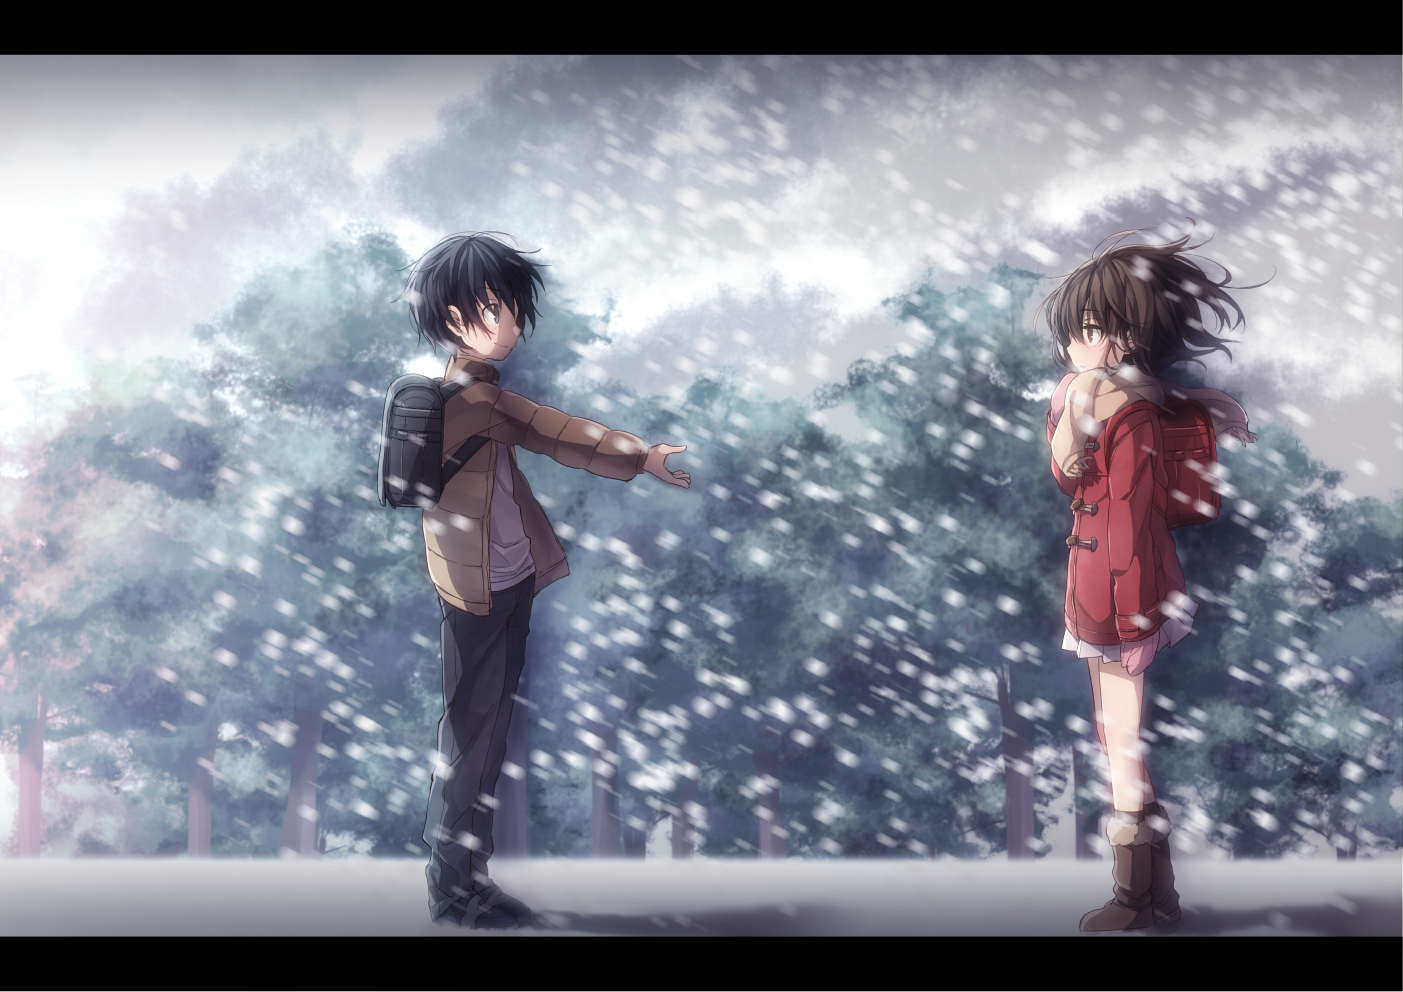 Anime Wallpapers Boku Dake Ga Inai Machi HD 4K Download For Mobile iPhone & PC